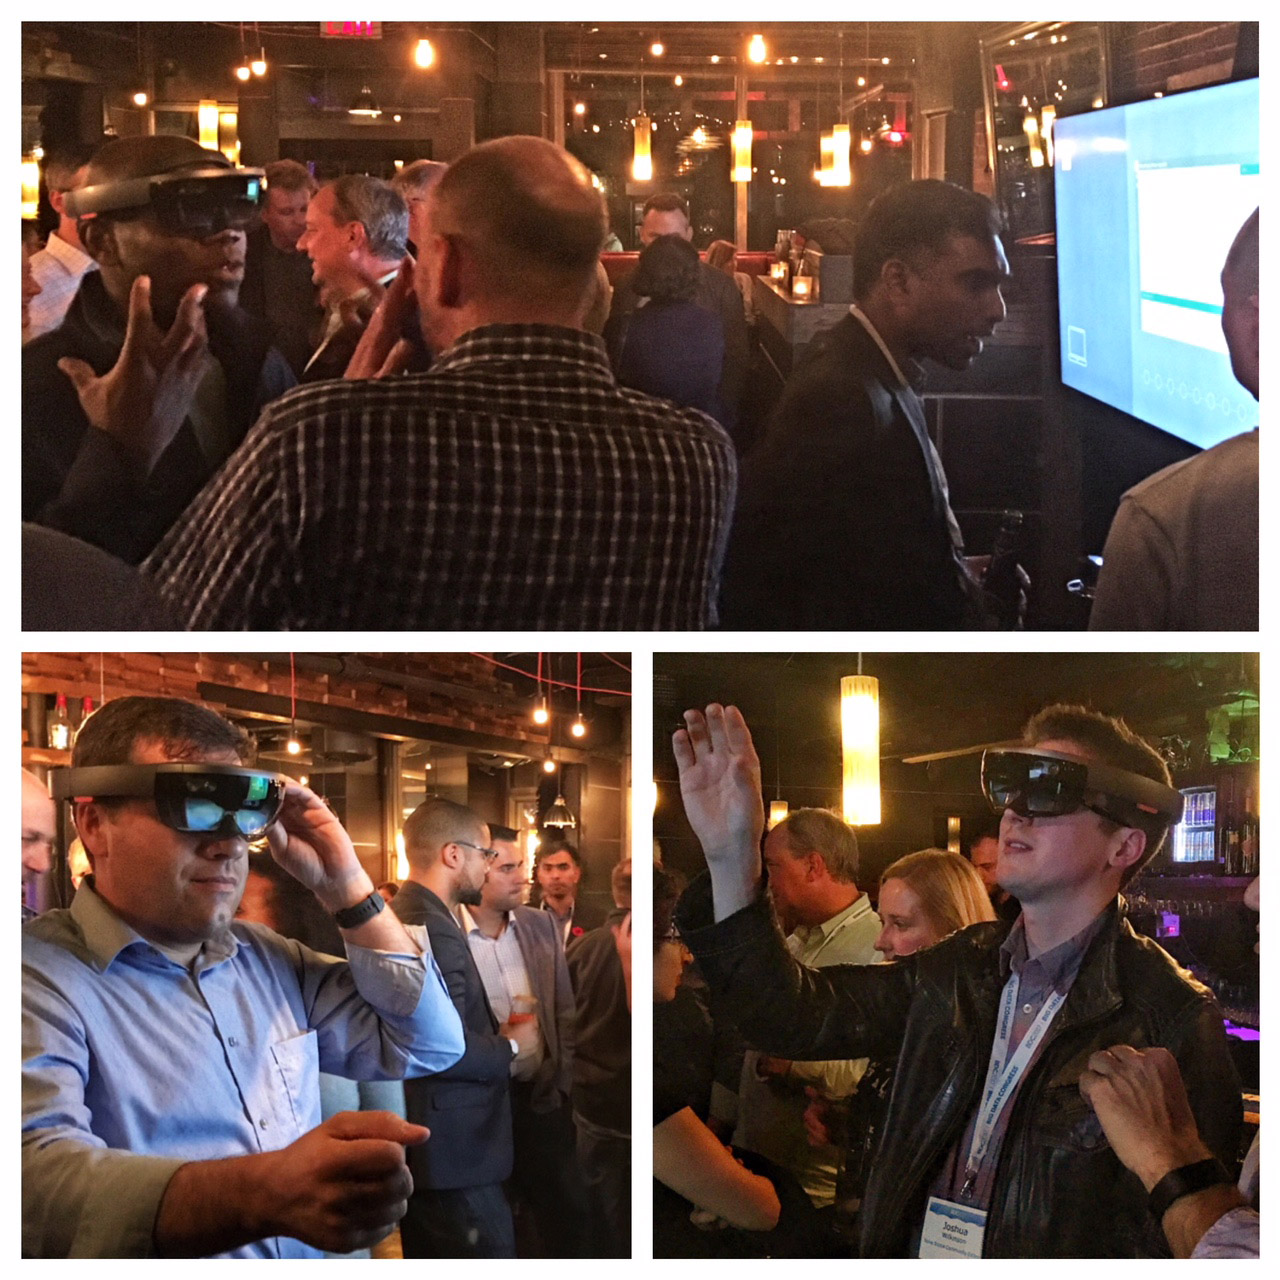 The Bitter End bar in Halifax was packed for a Mixed Reality demo of Hololens technology.